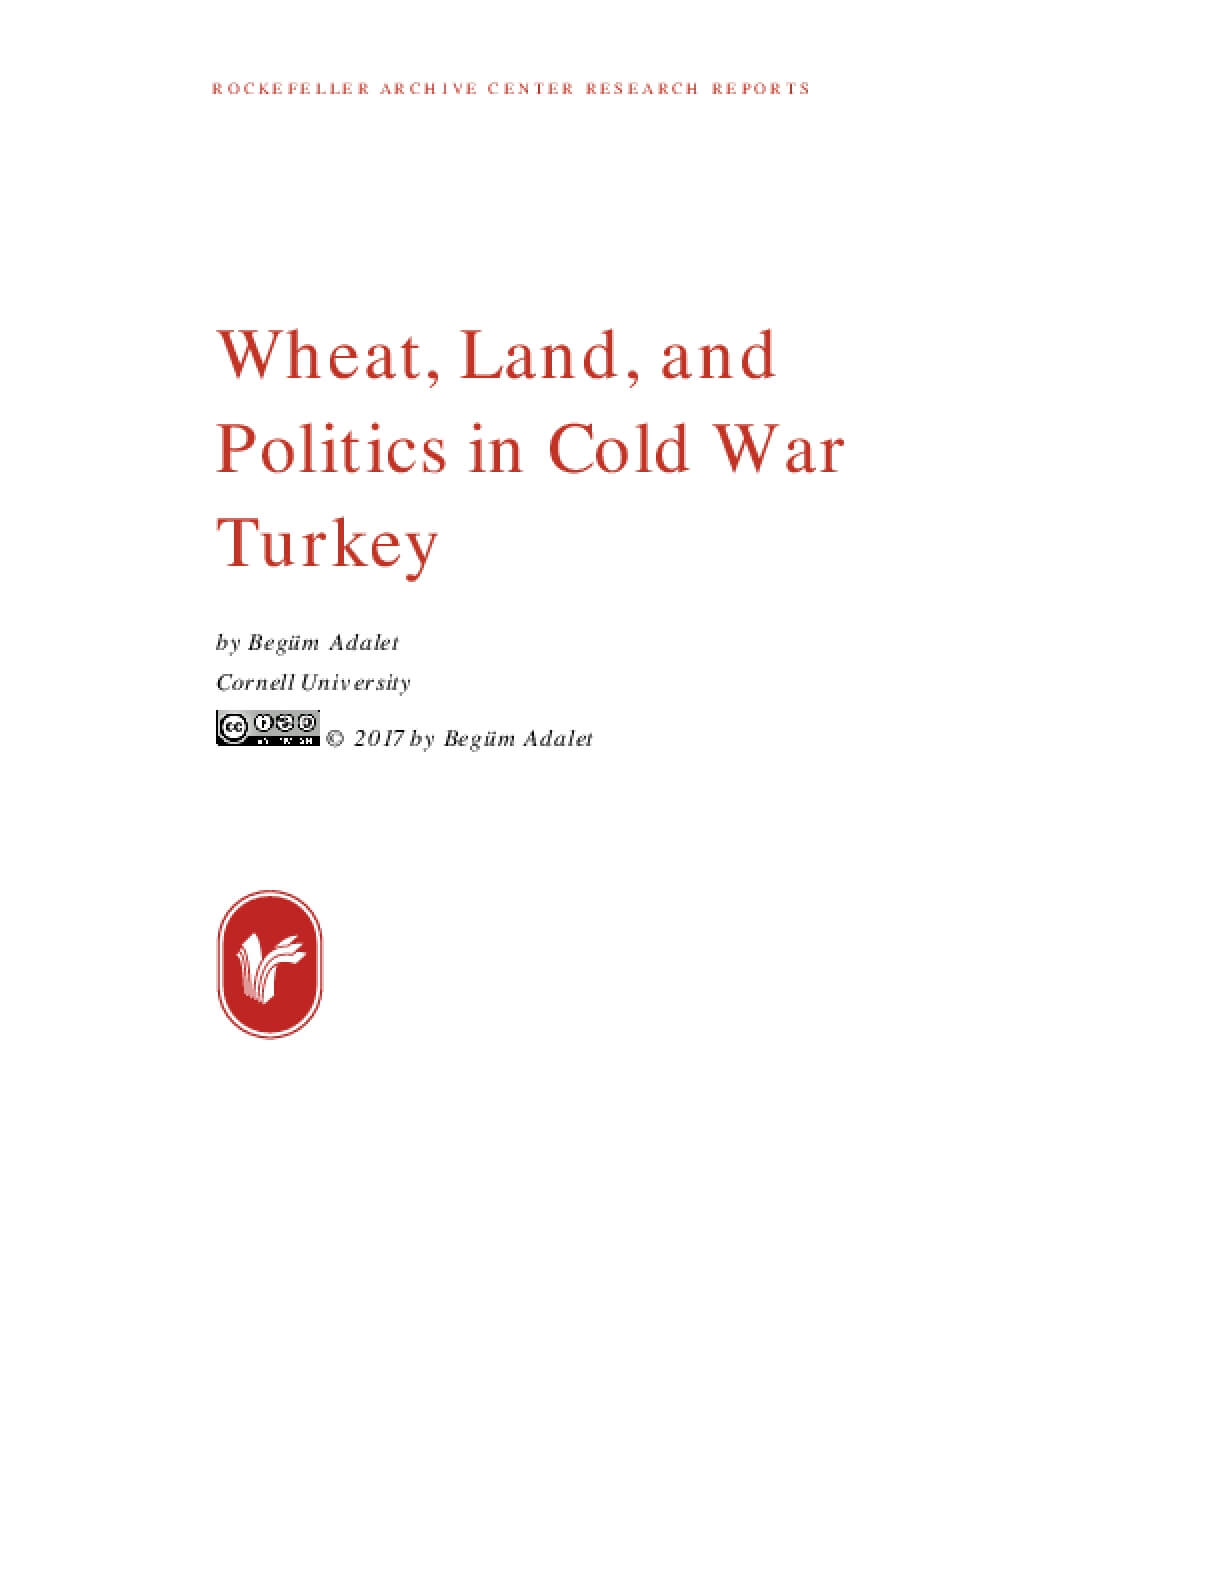 Wheat, Land, and Politics in Cold War Turkey